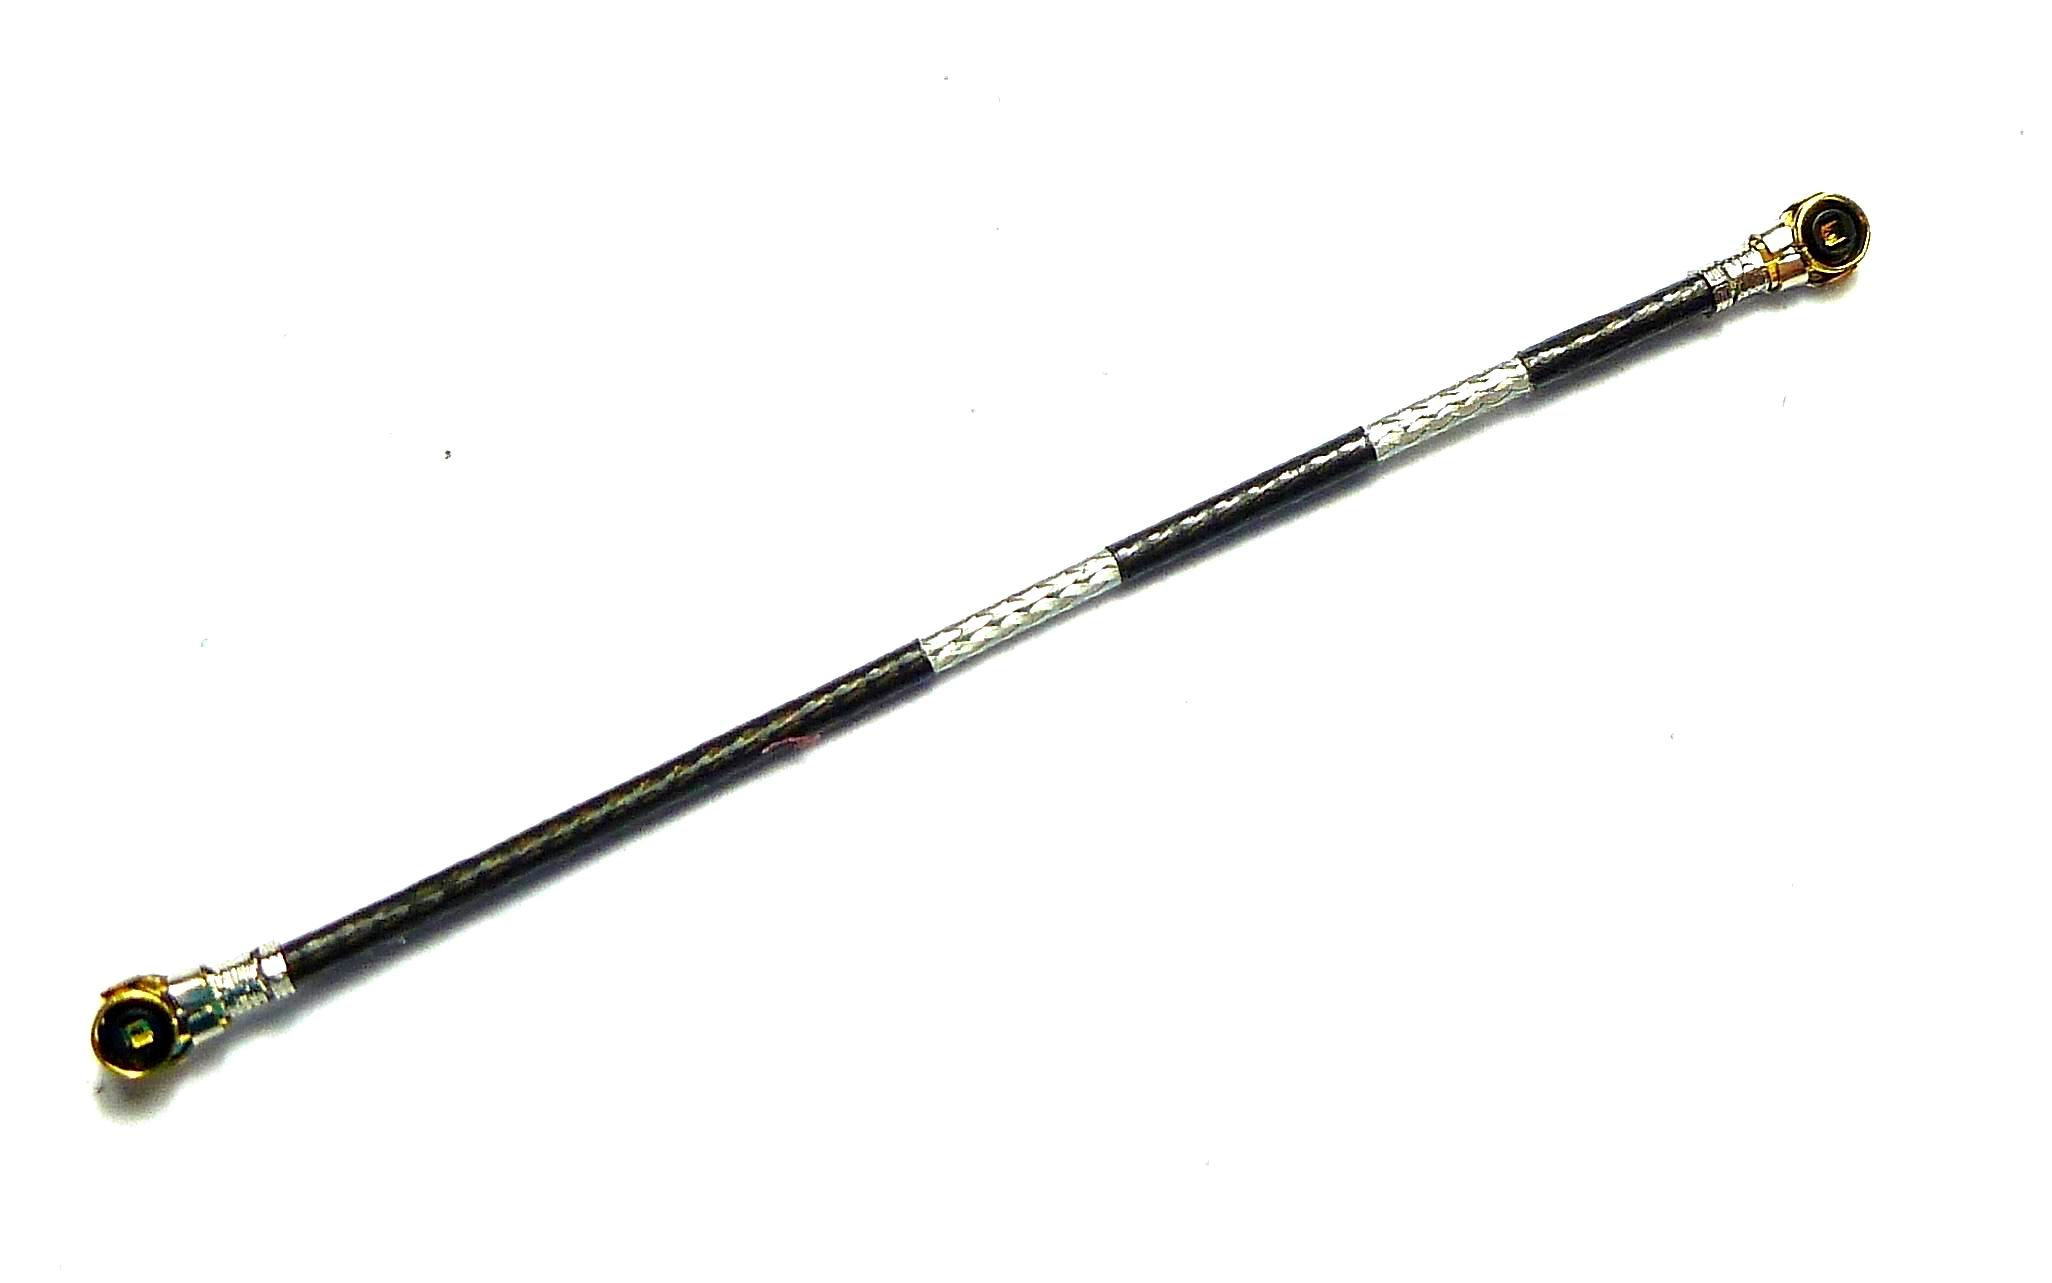 Coaxial cable Sony Xperia Z3 compact D5803